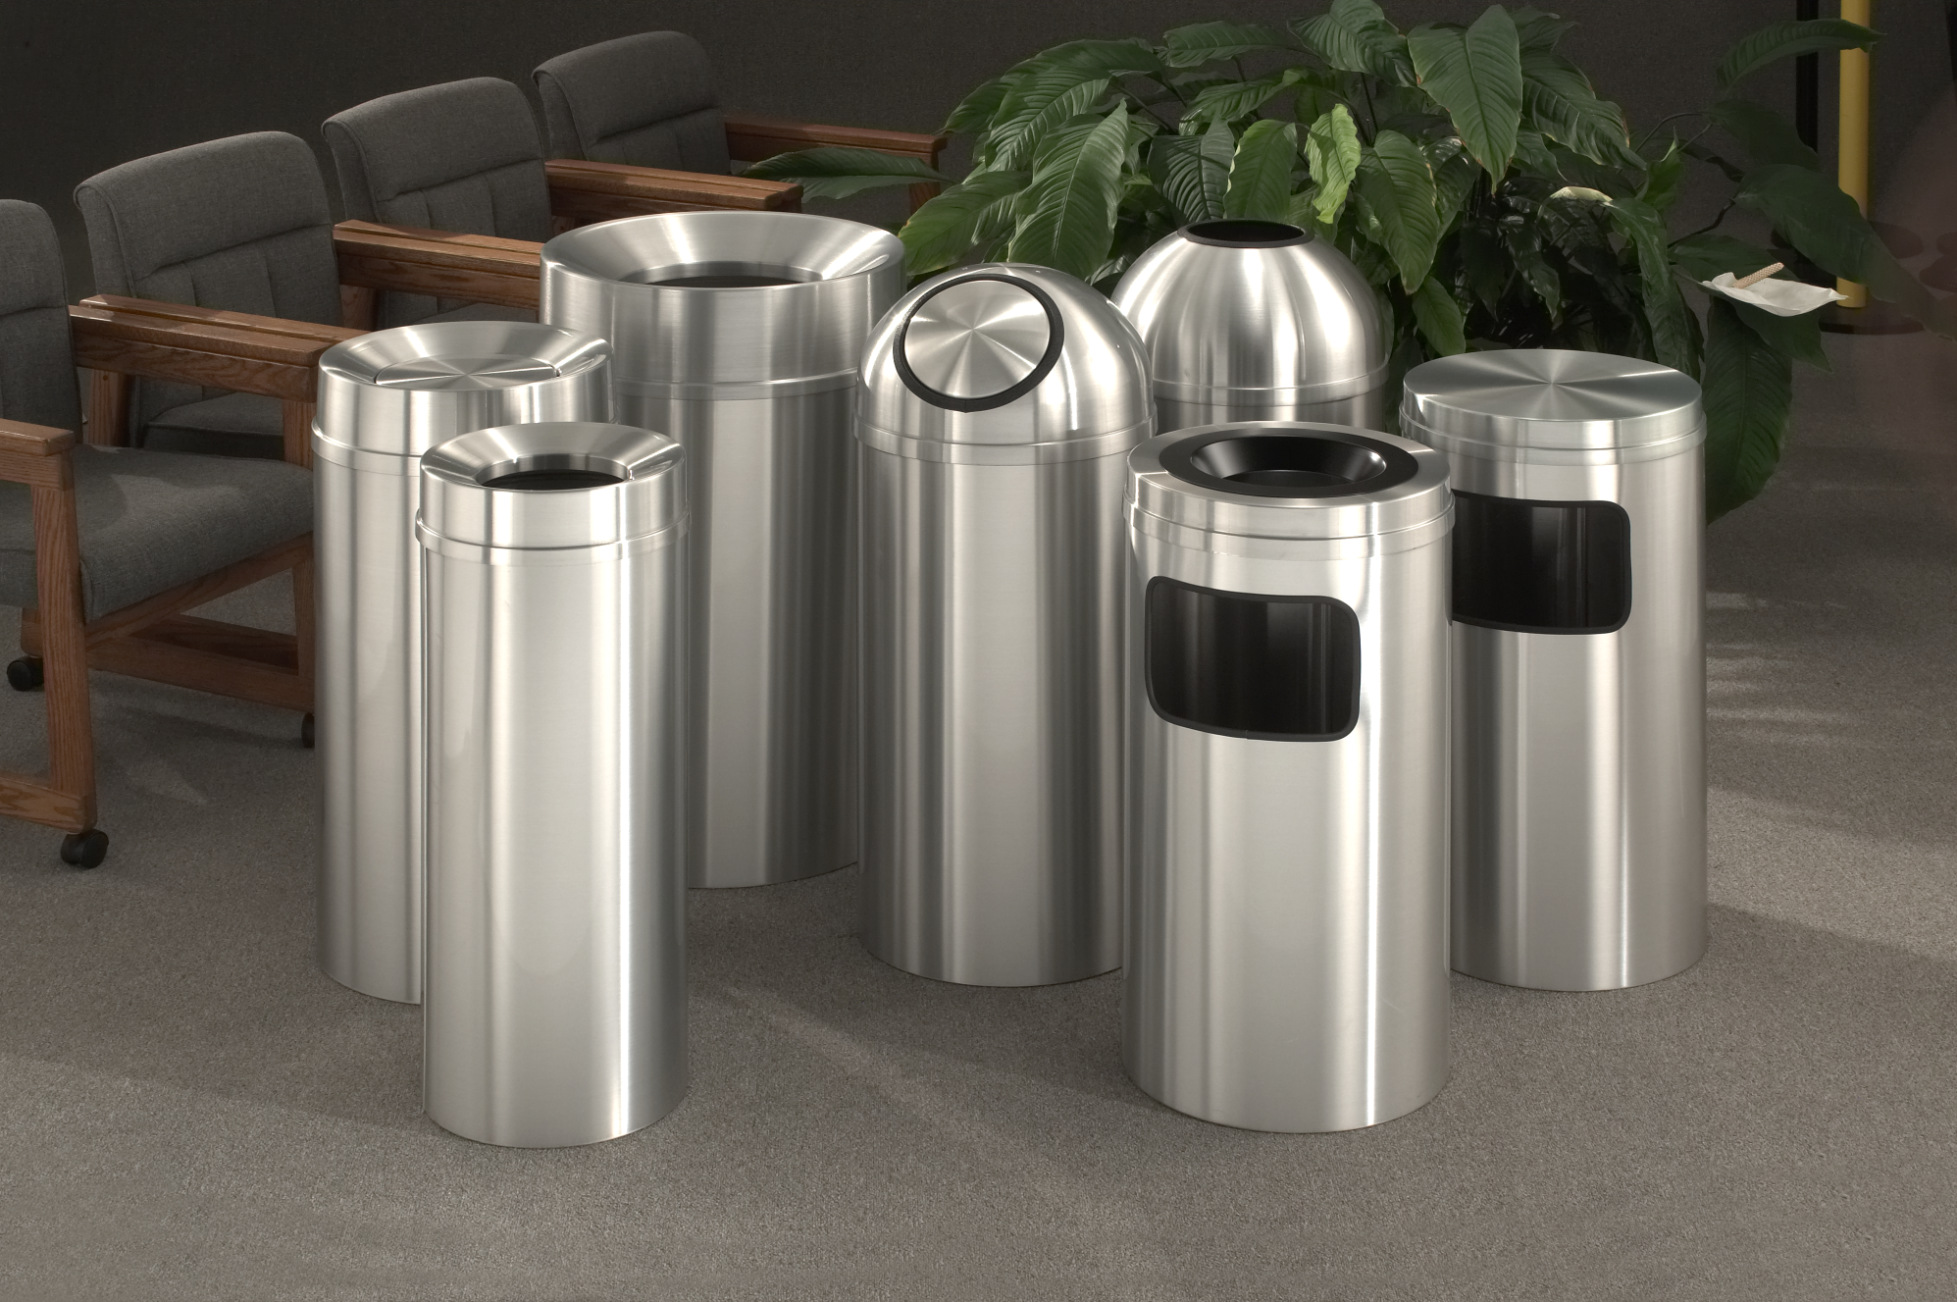 Luxury Trash Cans The Advantages Of Decorative Or Designer Waste Receptacles